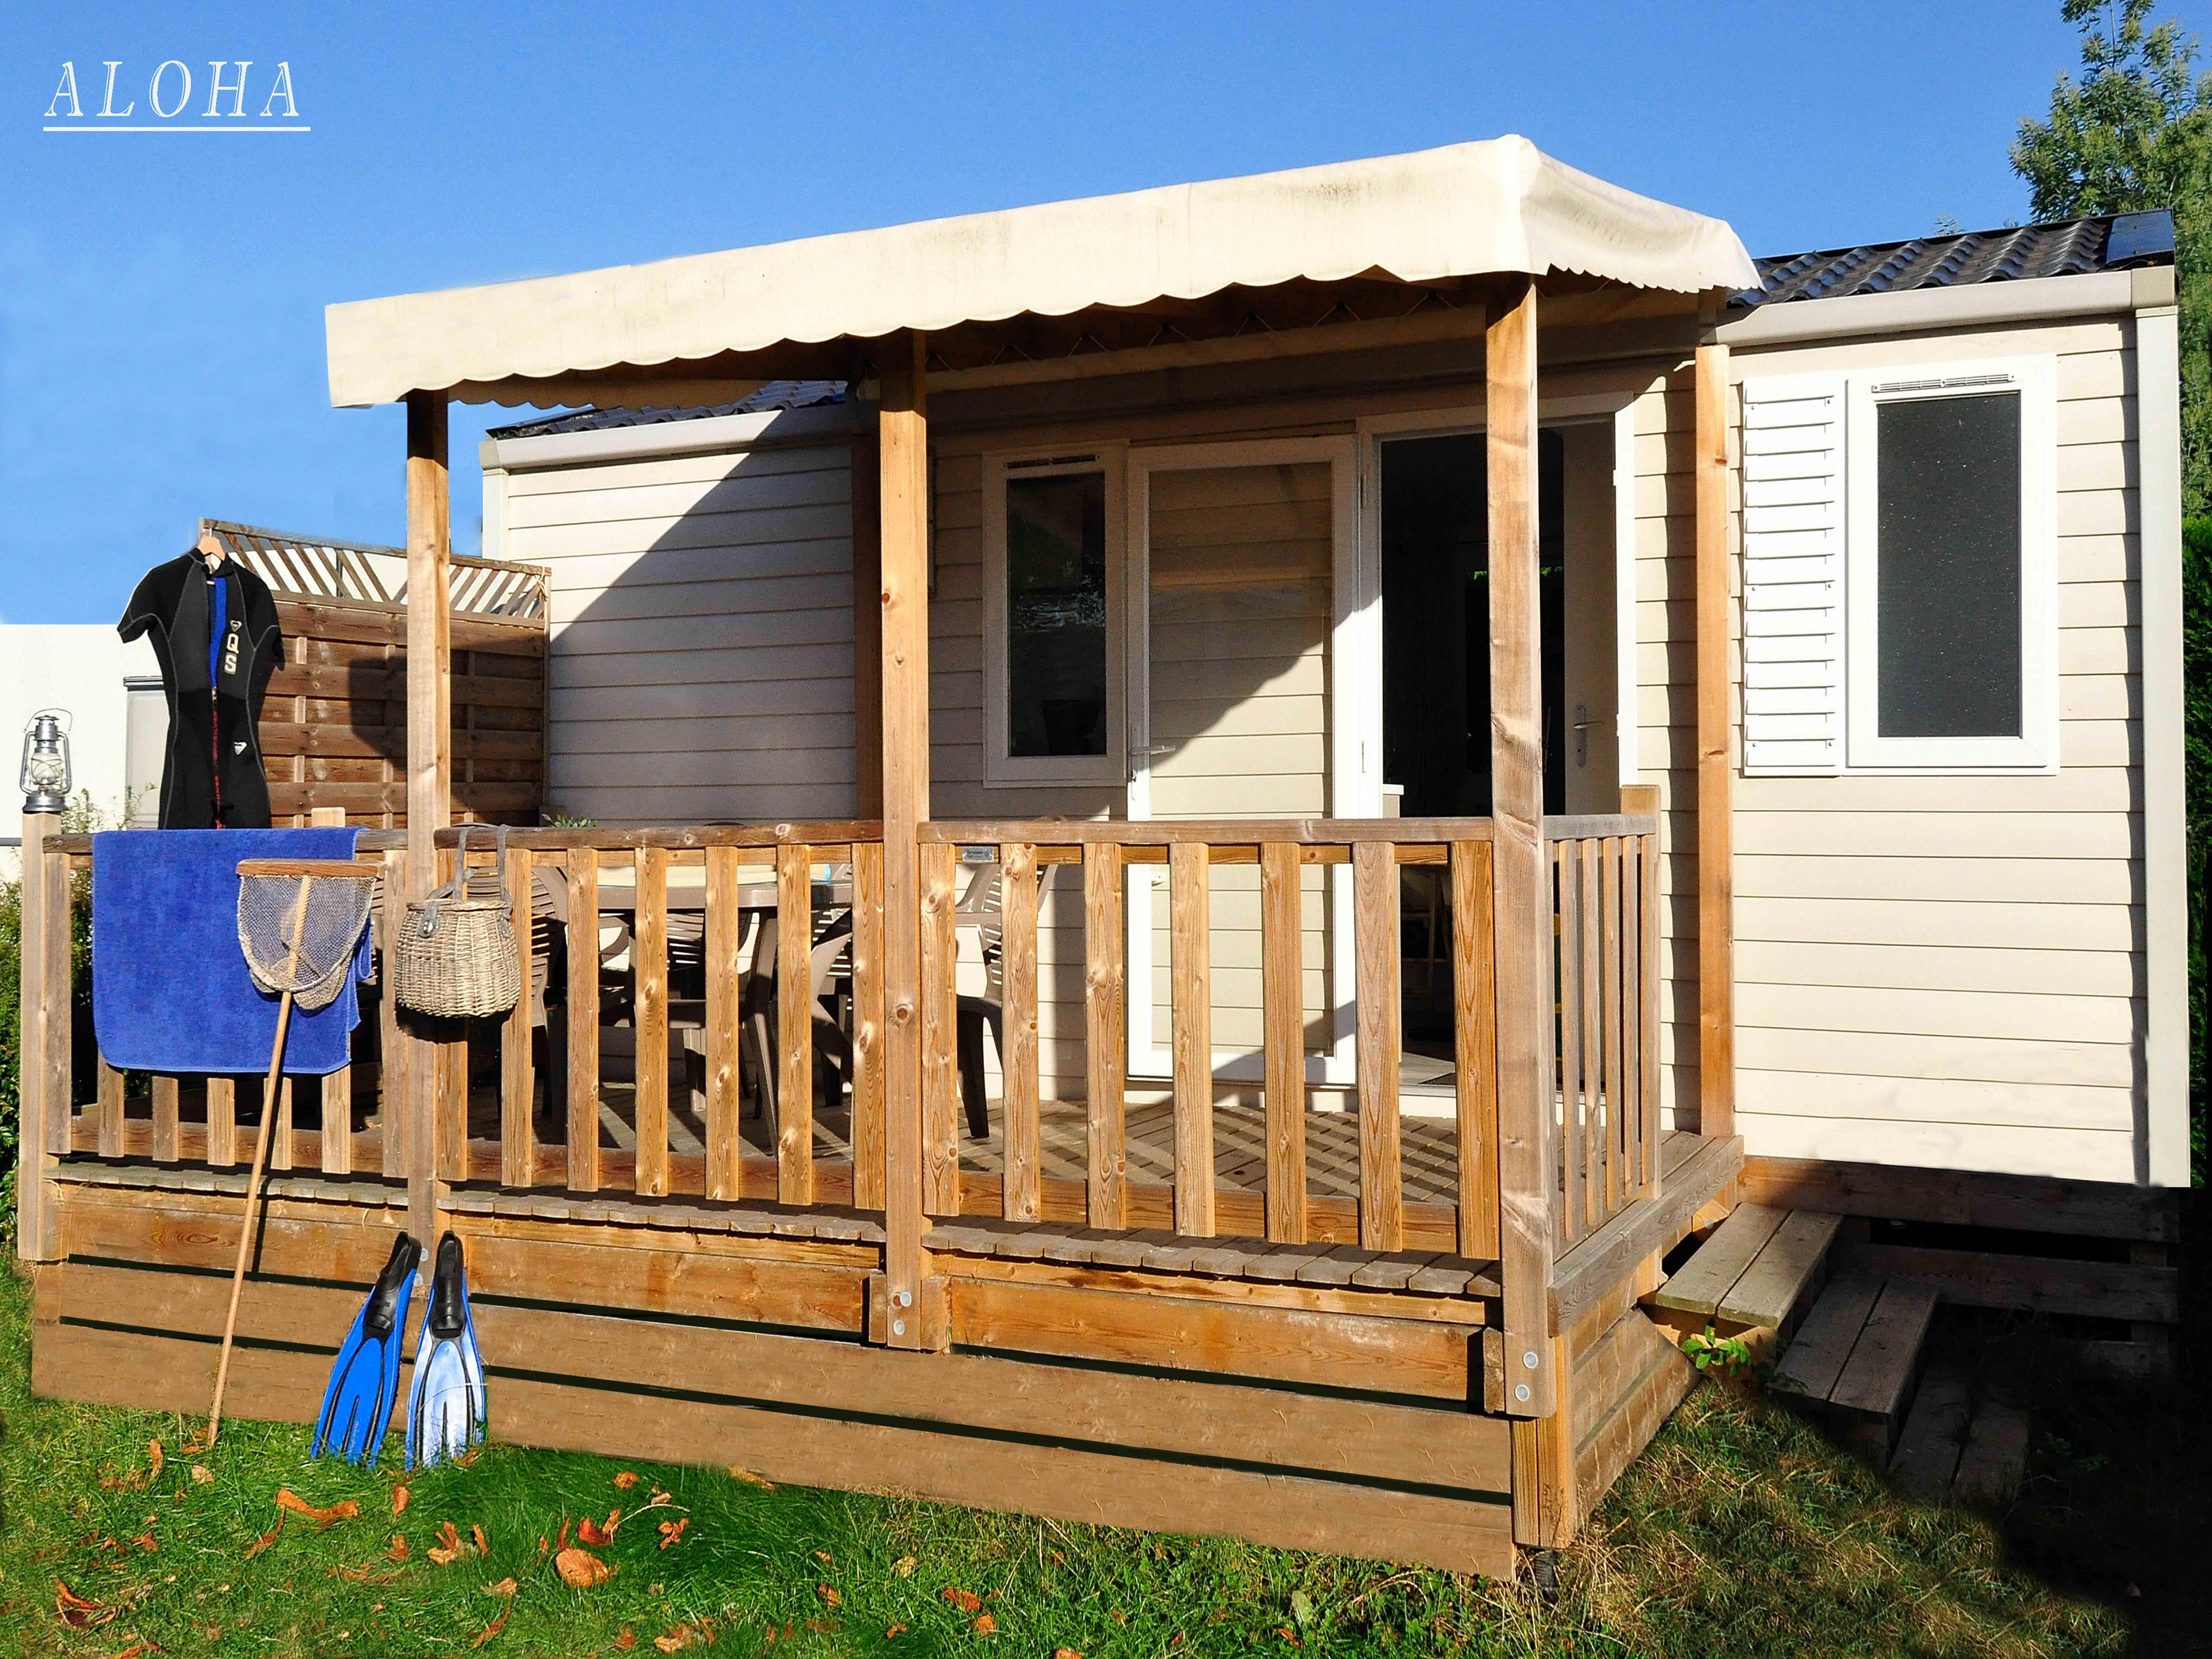 Location - Cottage Aloha 2 Chambres Terrasse Couverte 24.20M² - Camping La Touesse